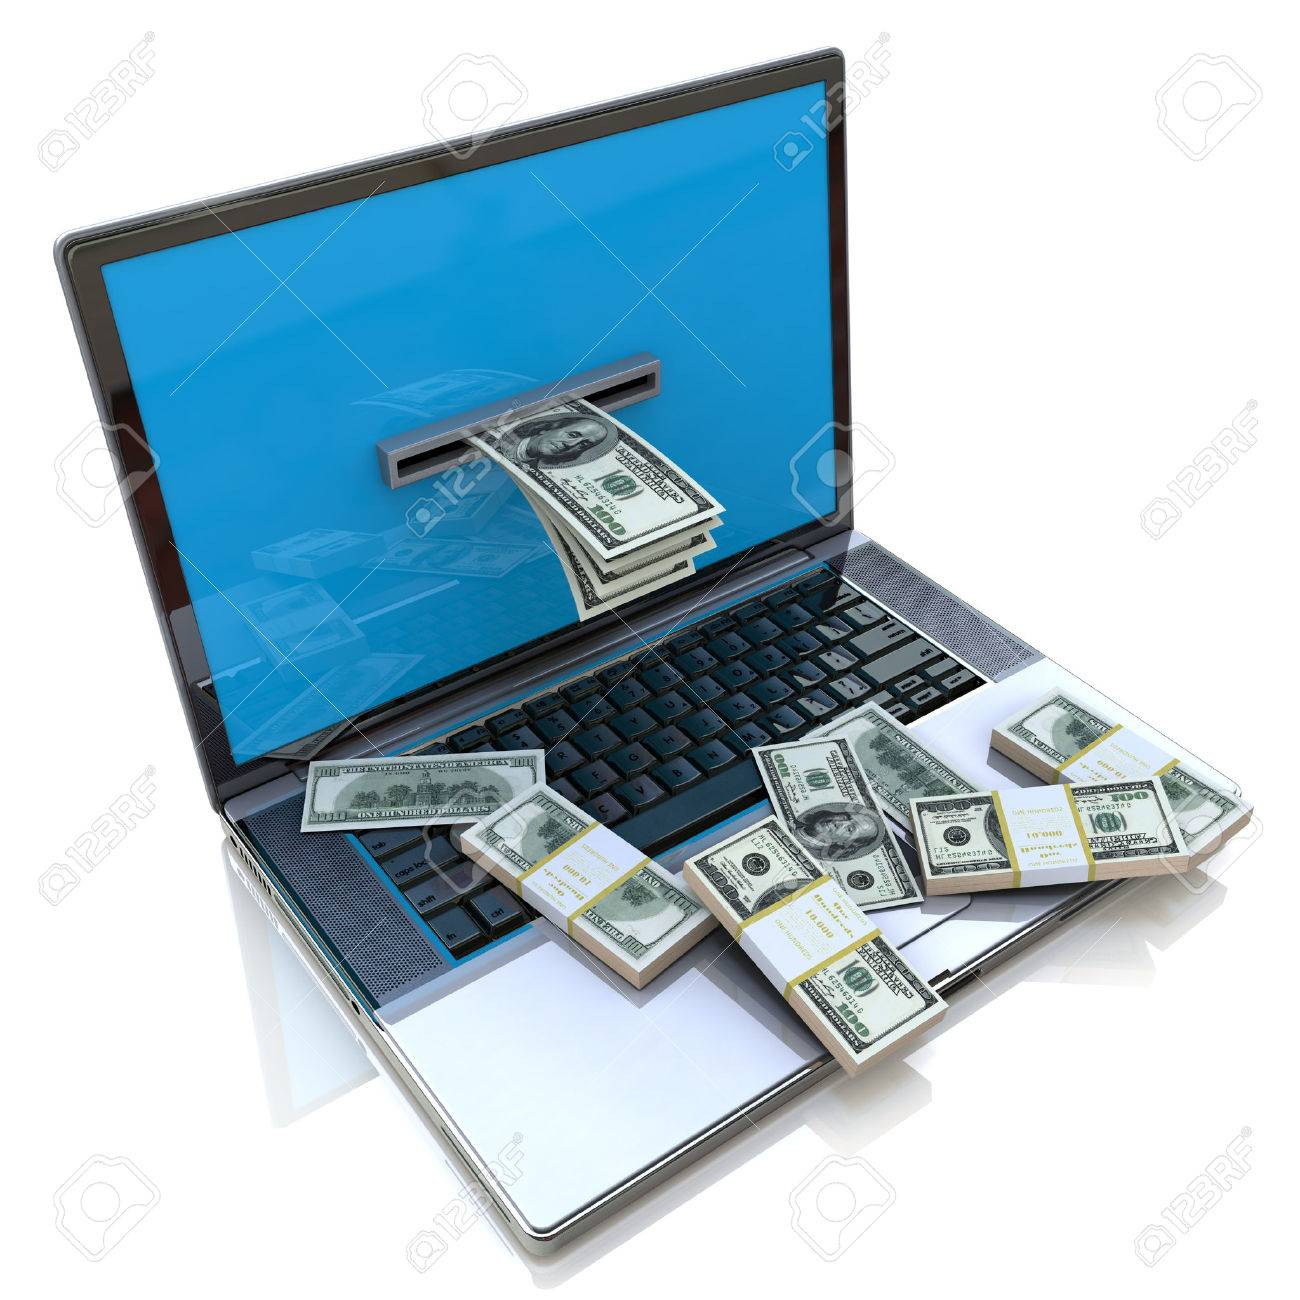 Making Money Online - Withdrawing Dollars From Laptop, Earnings ...